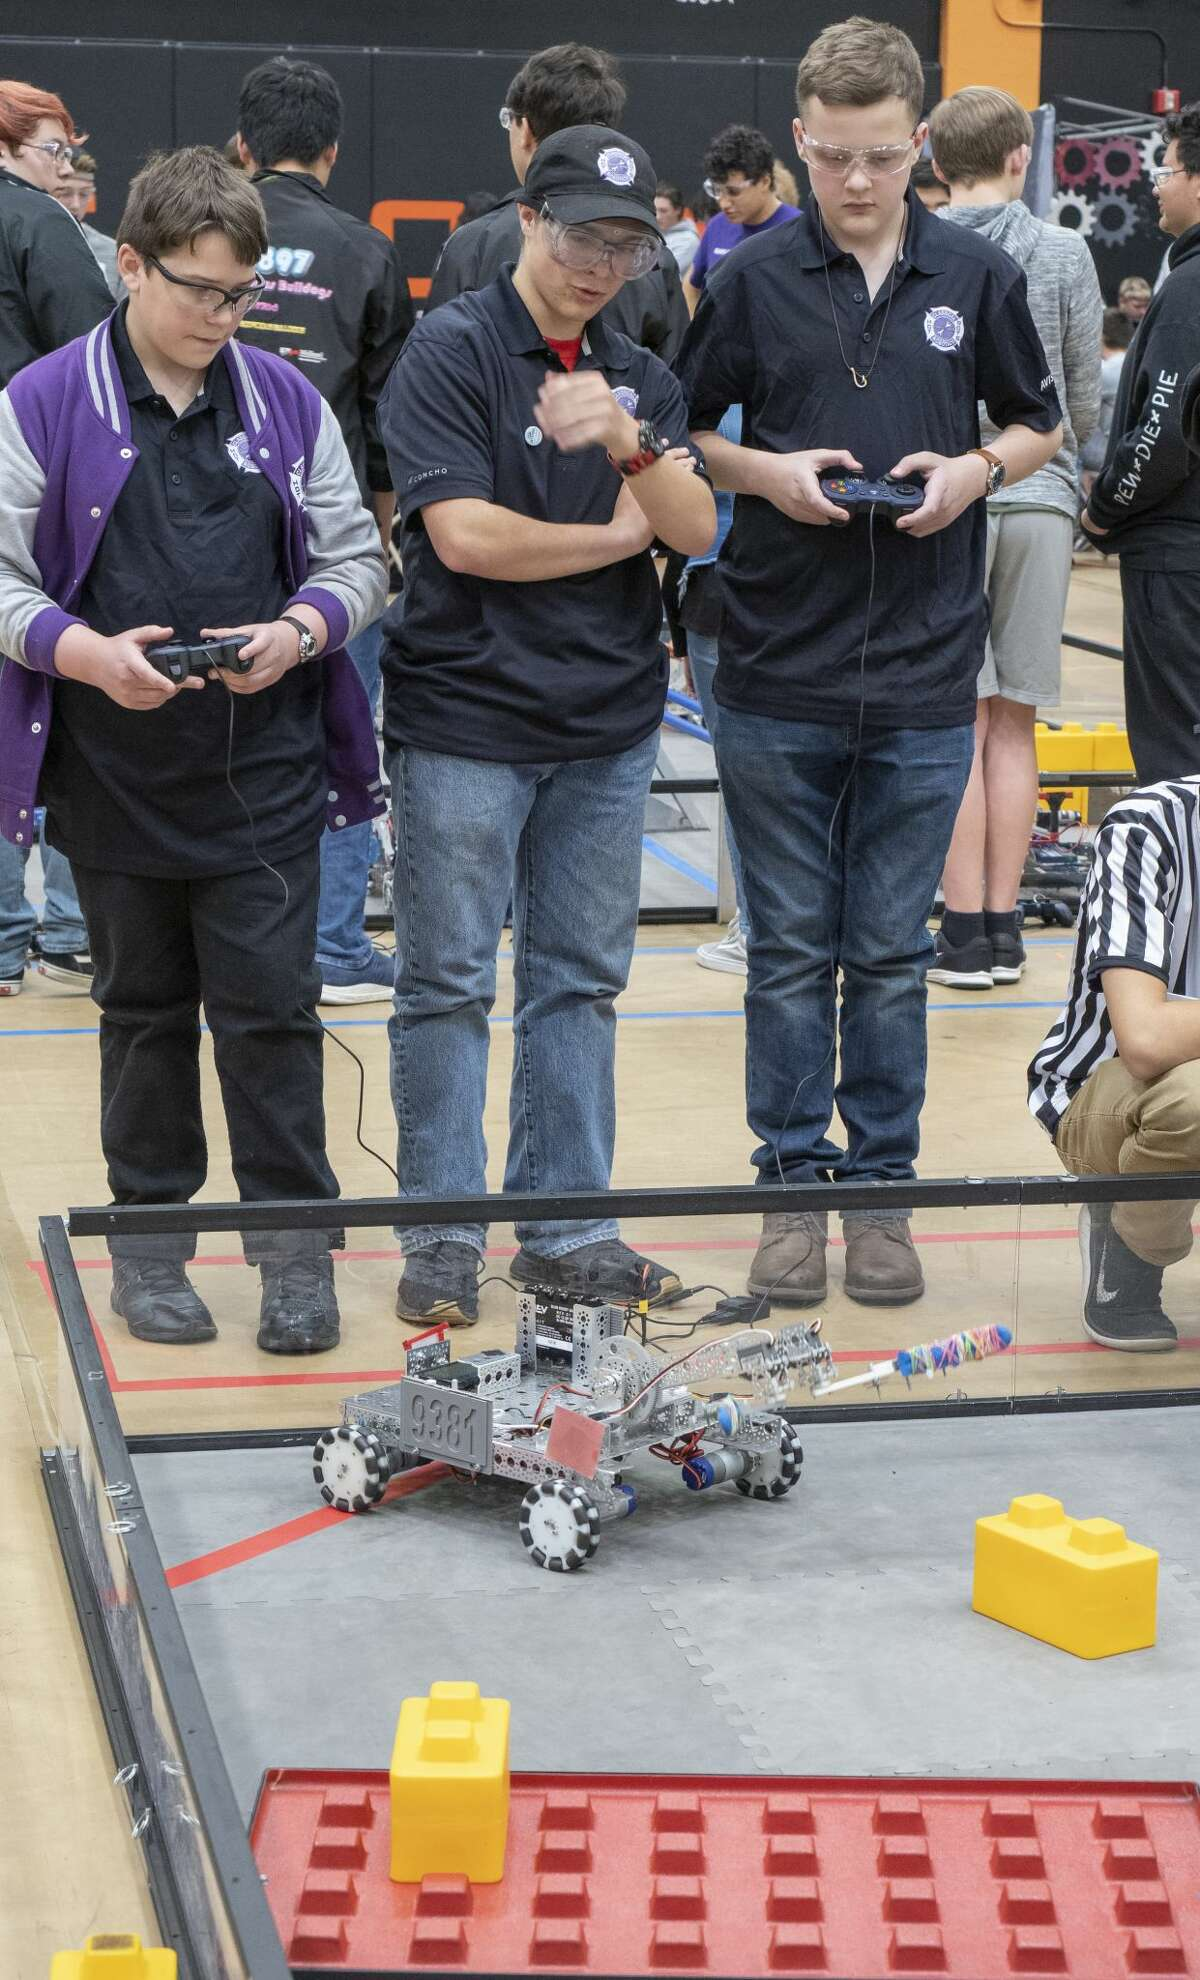 Midland Classical Academy's team Hot Box Purple, 9381, compete 02/01/2020 in the FIRST Tech Challenge South League championships at UTPB. Tim Fischer/Reporter-Telegram